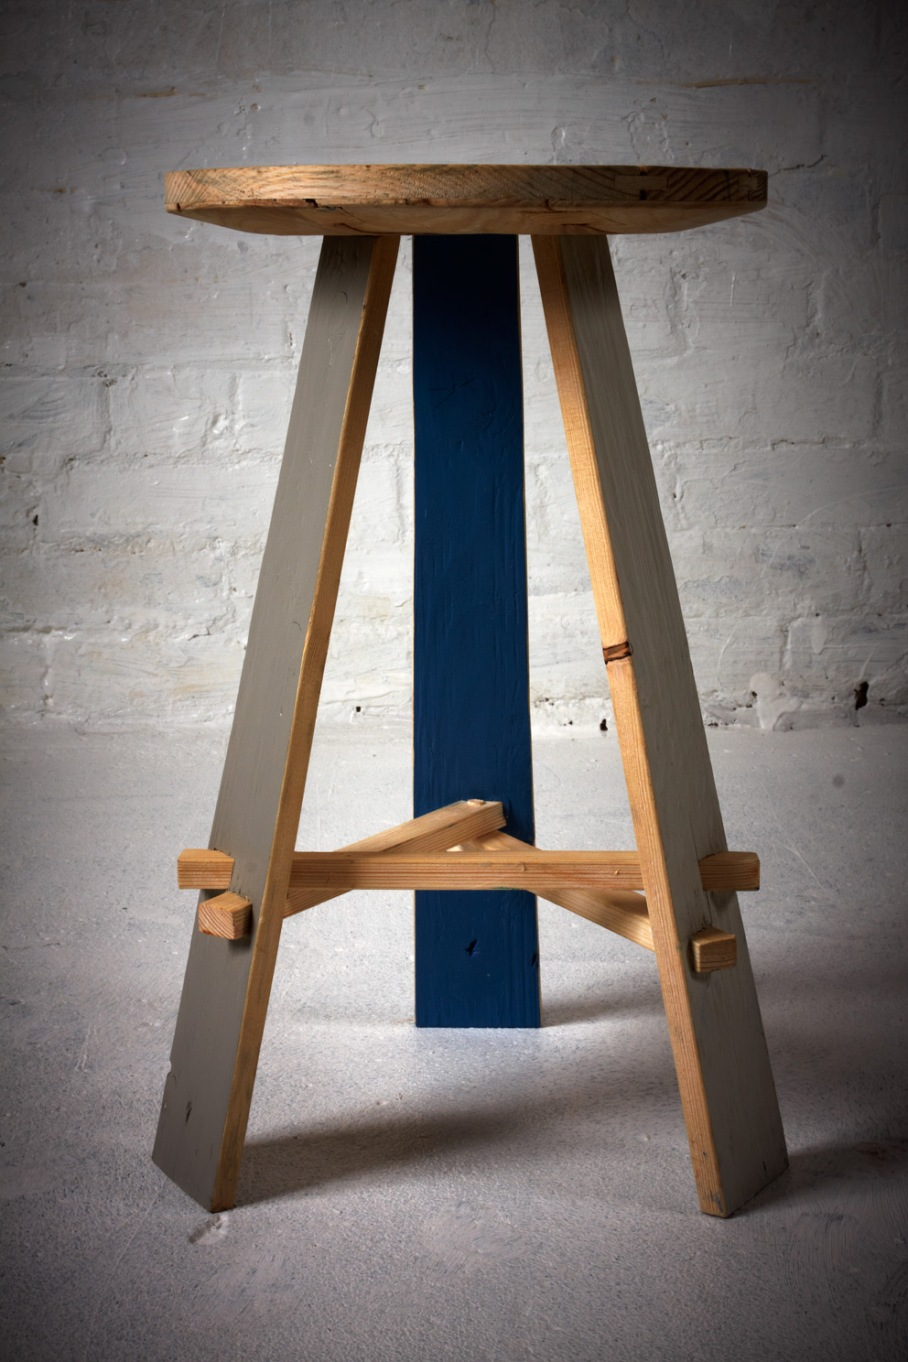 MADE-IN-PECKHAM_Gowlett-Stool_side-view